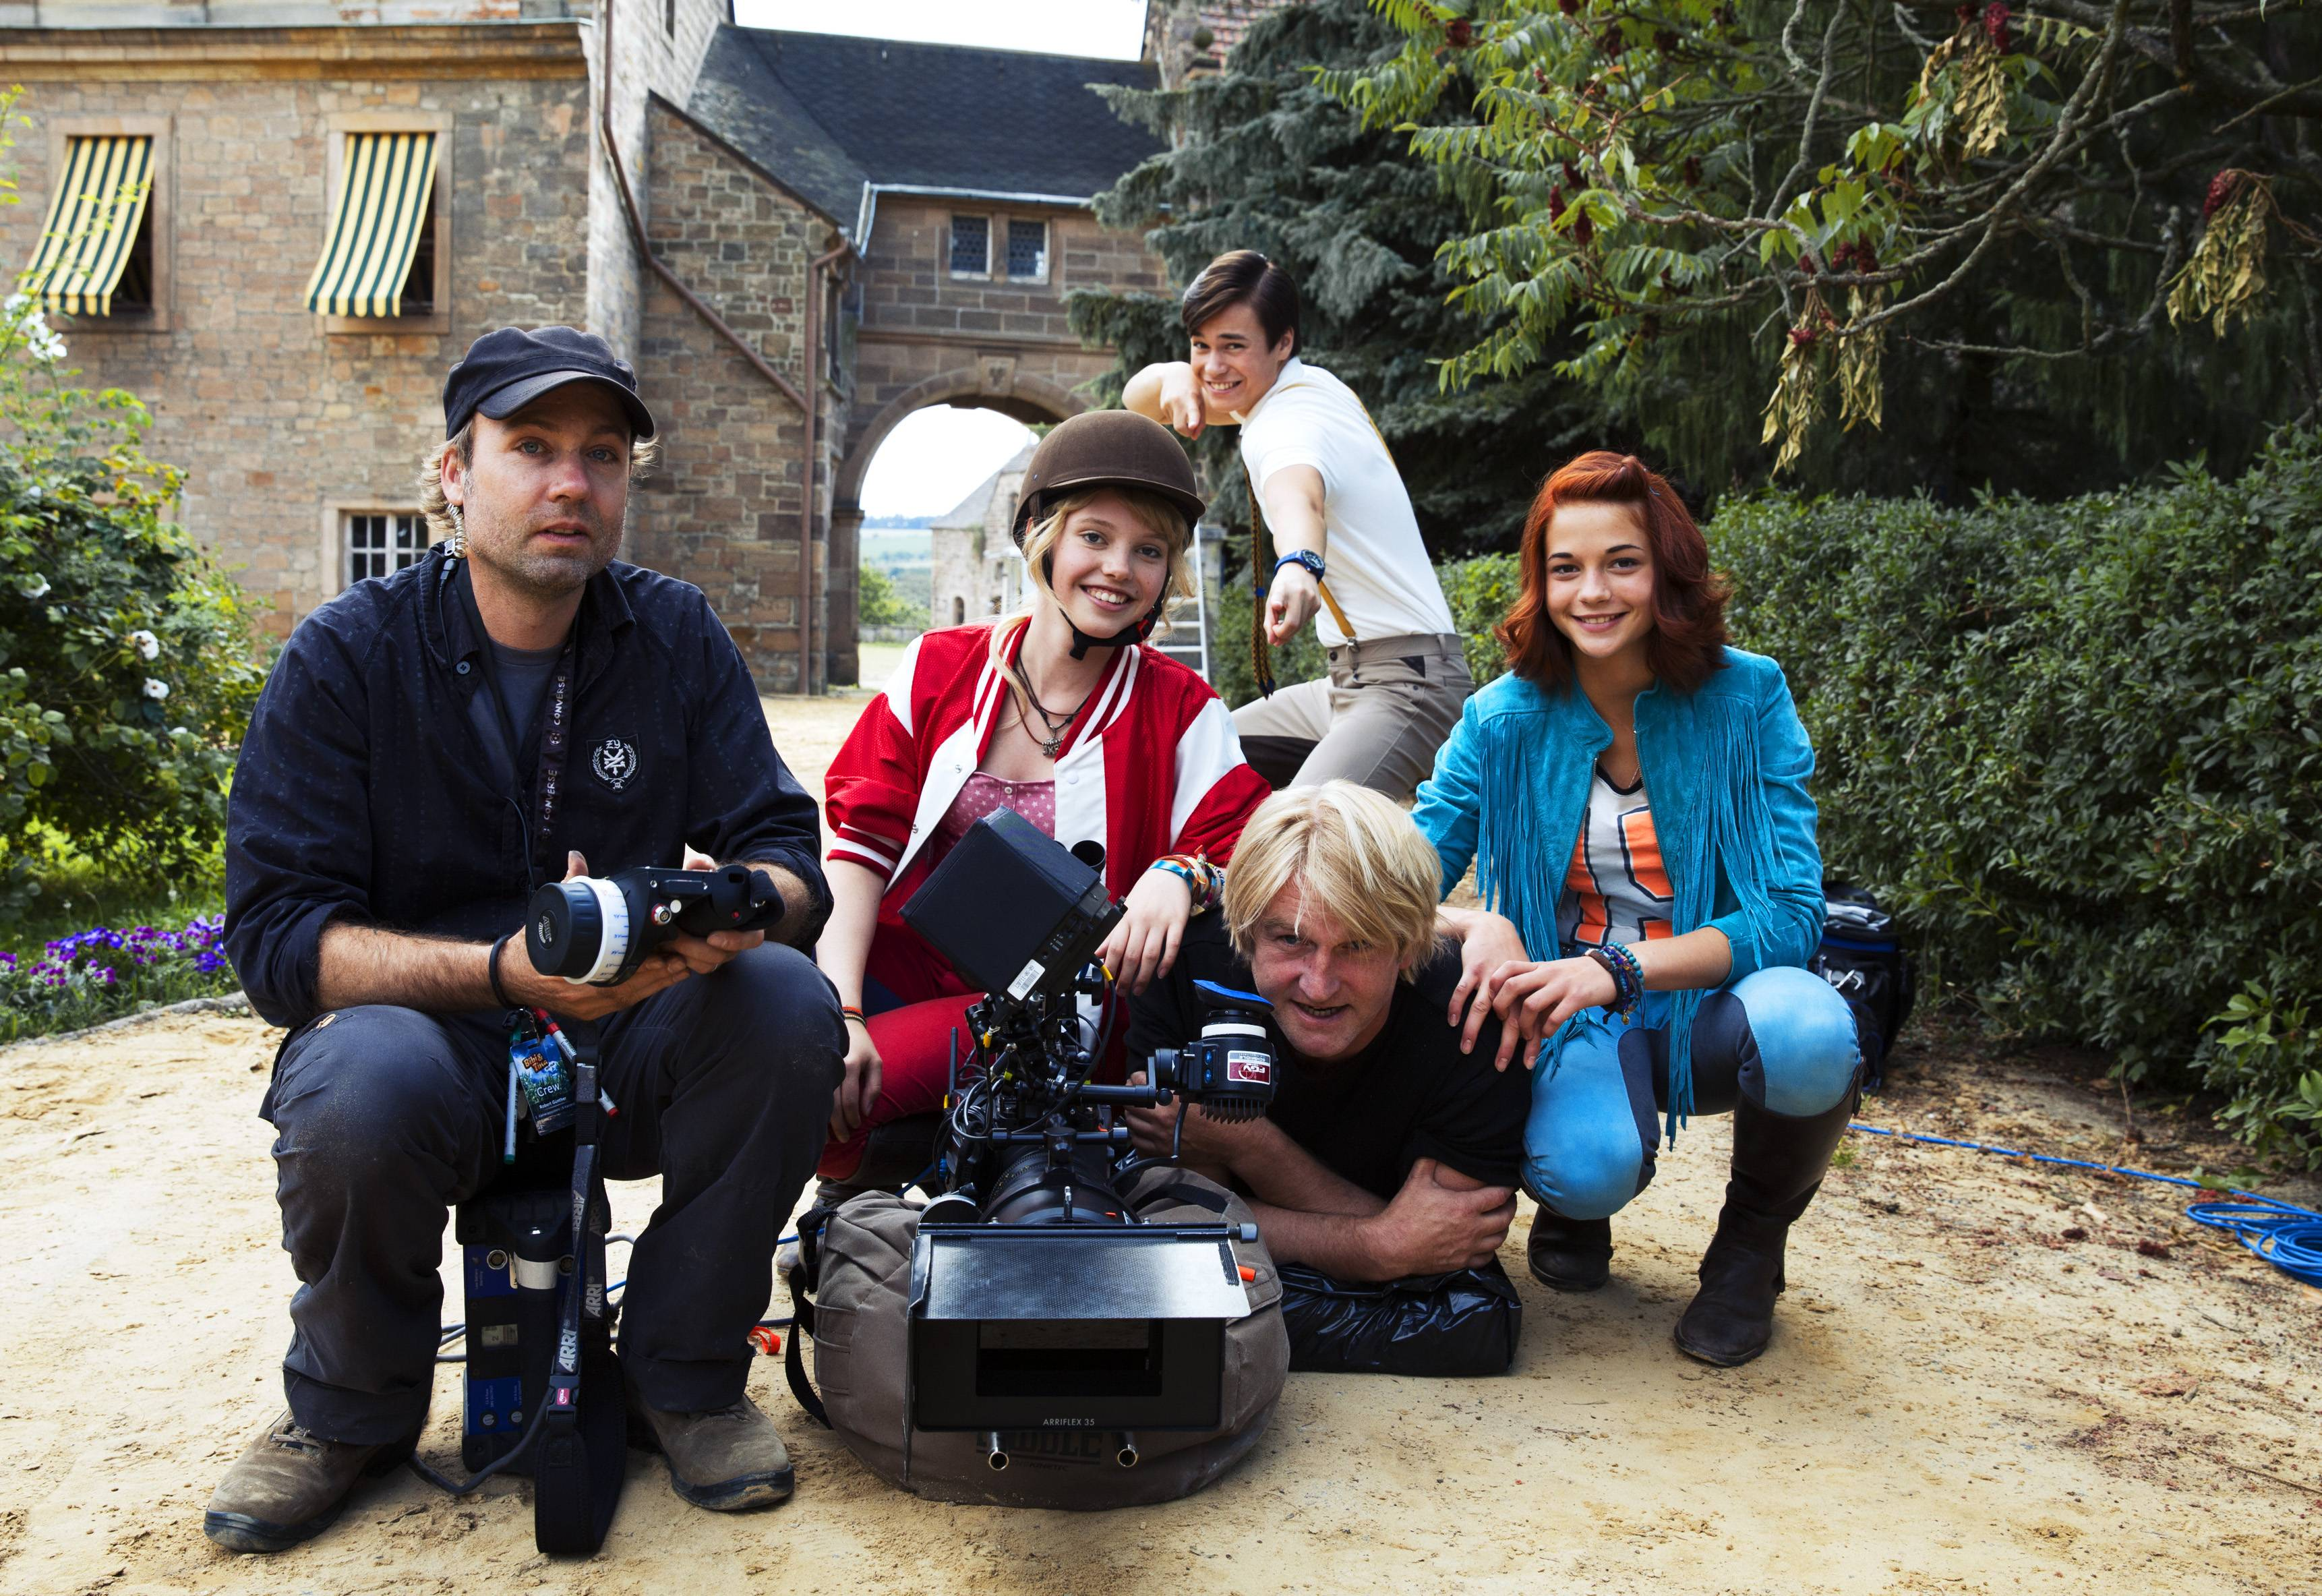 Behind the scenes of the film Bibi und Tina (Germany 2014, directed by Detlev Buck)